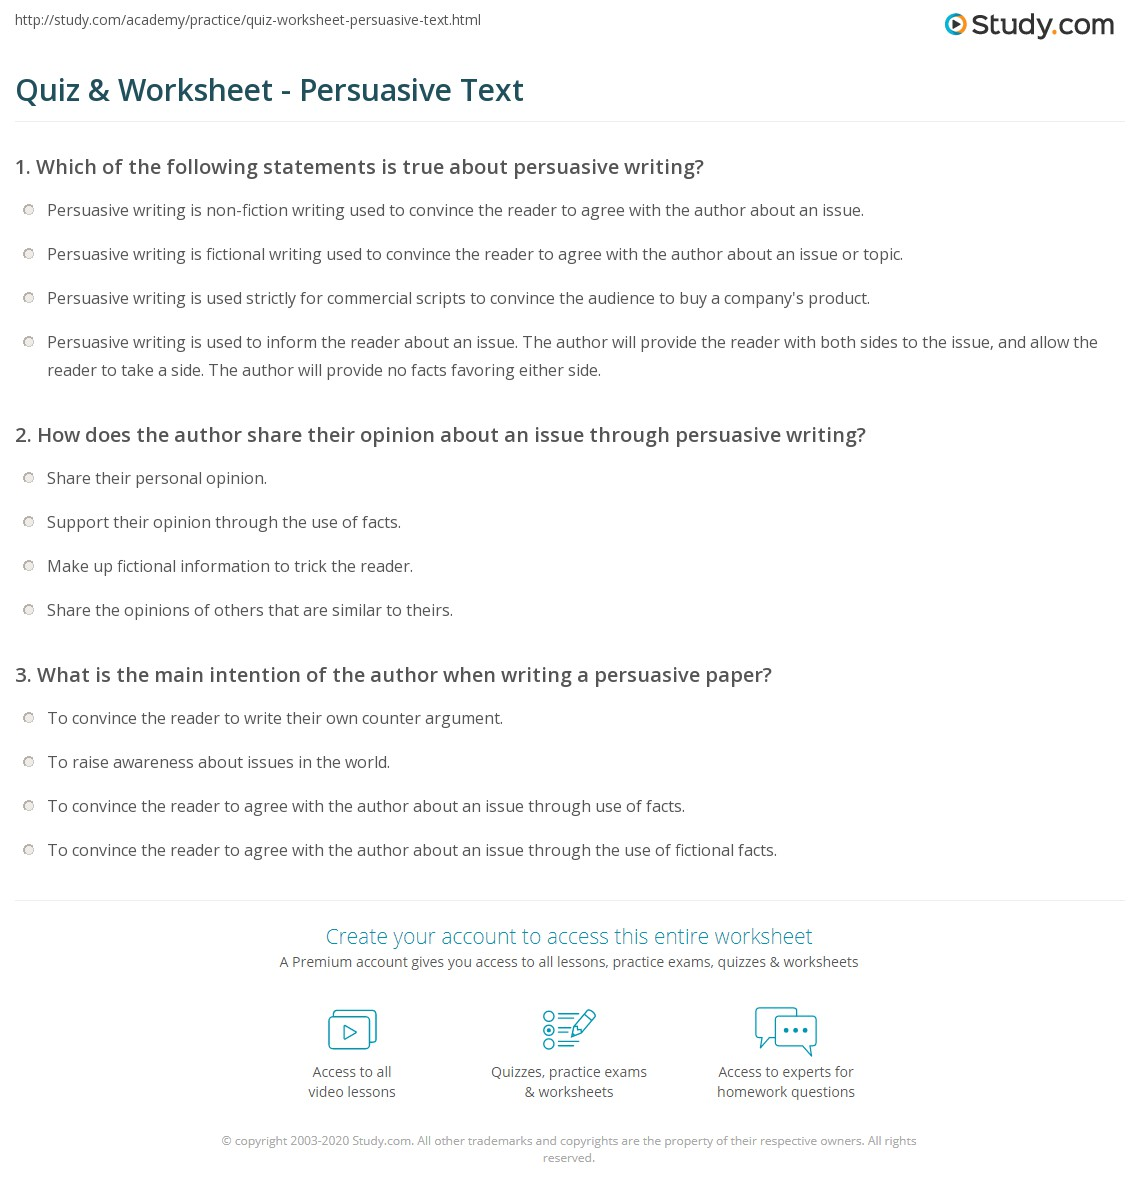 quiz worksheet persuasive text com how does the author share their opinion about an issue through persuasive writing